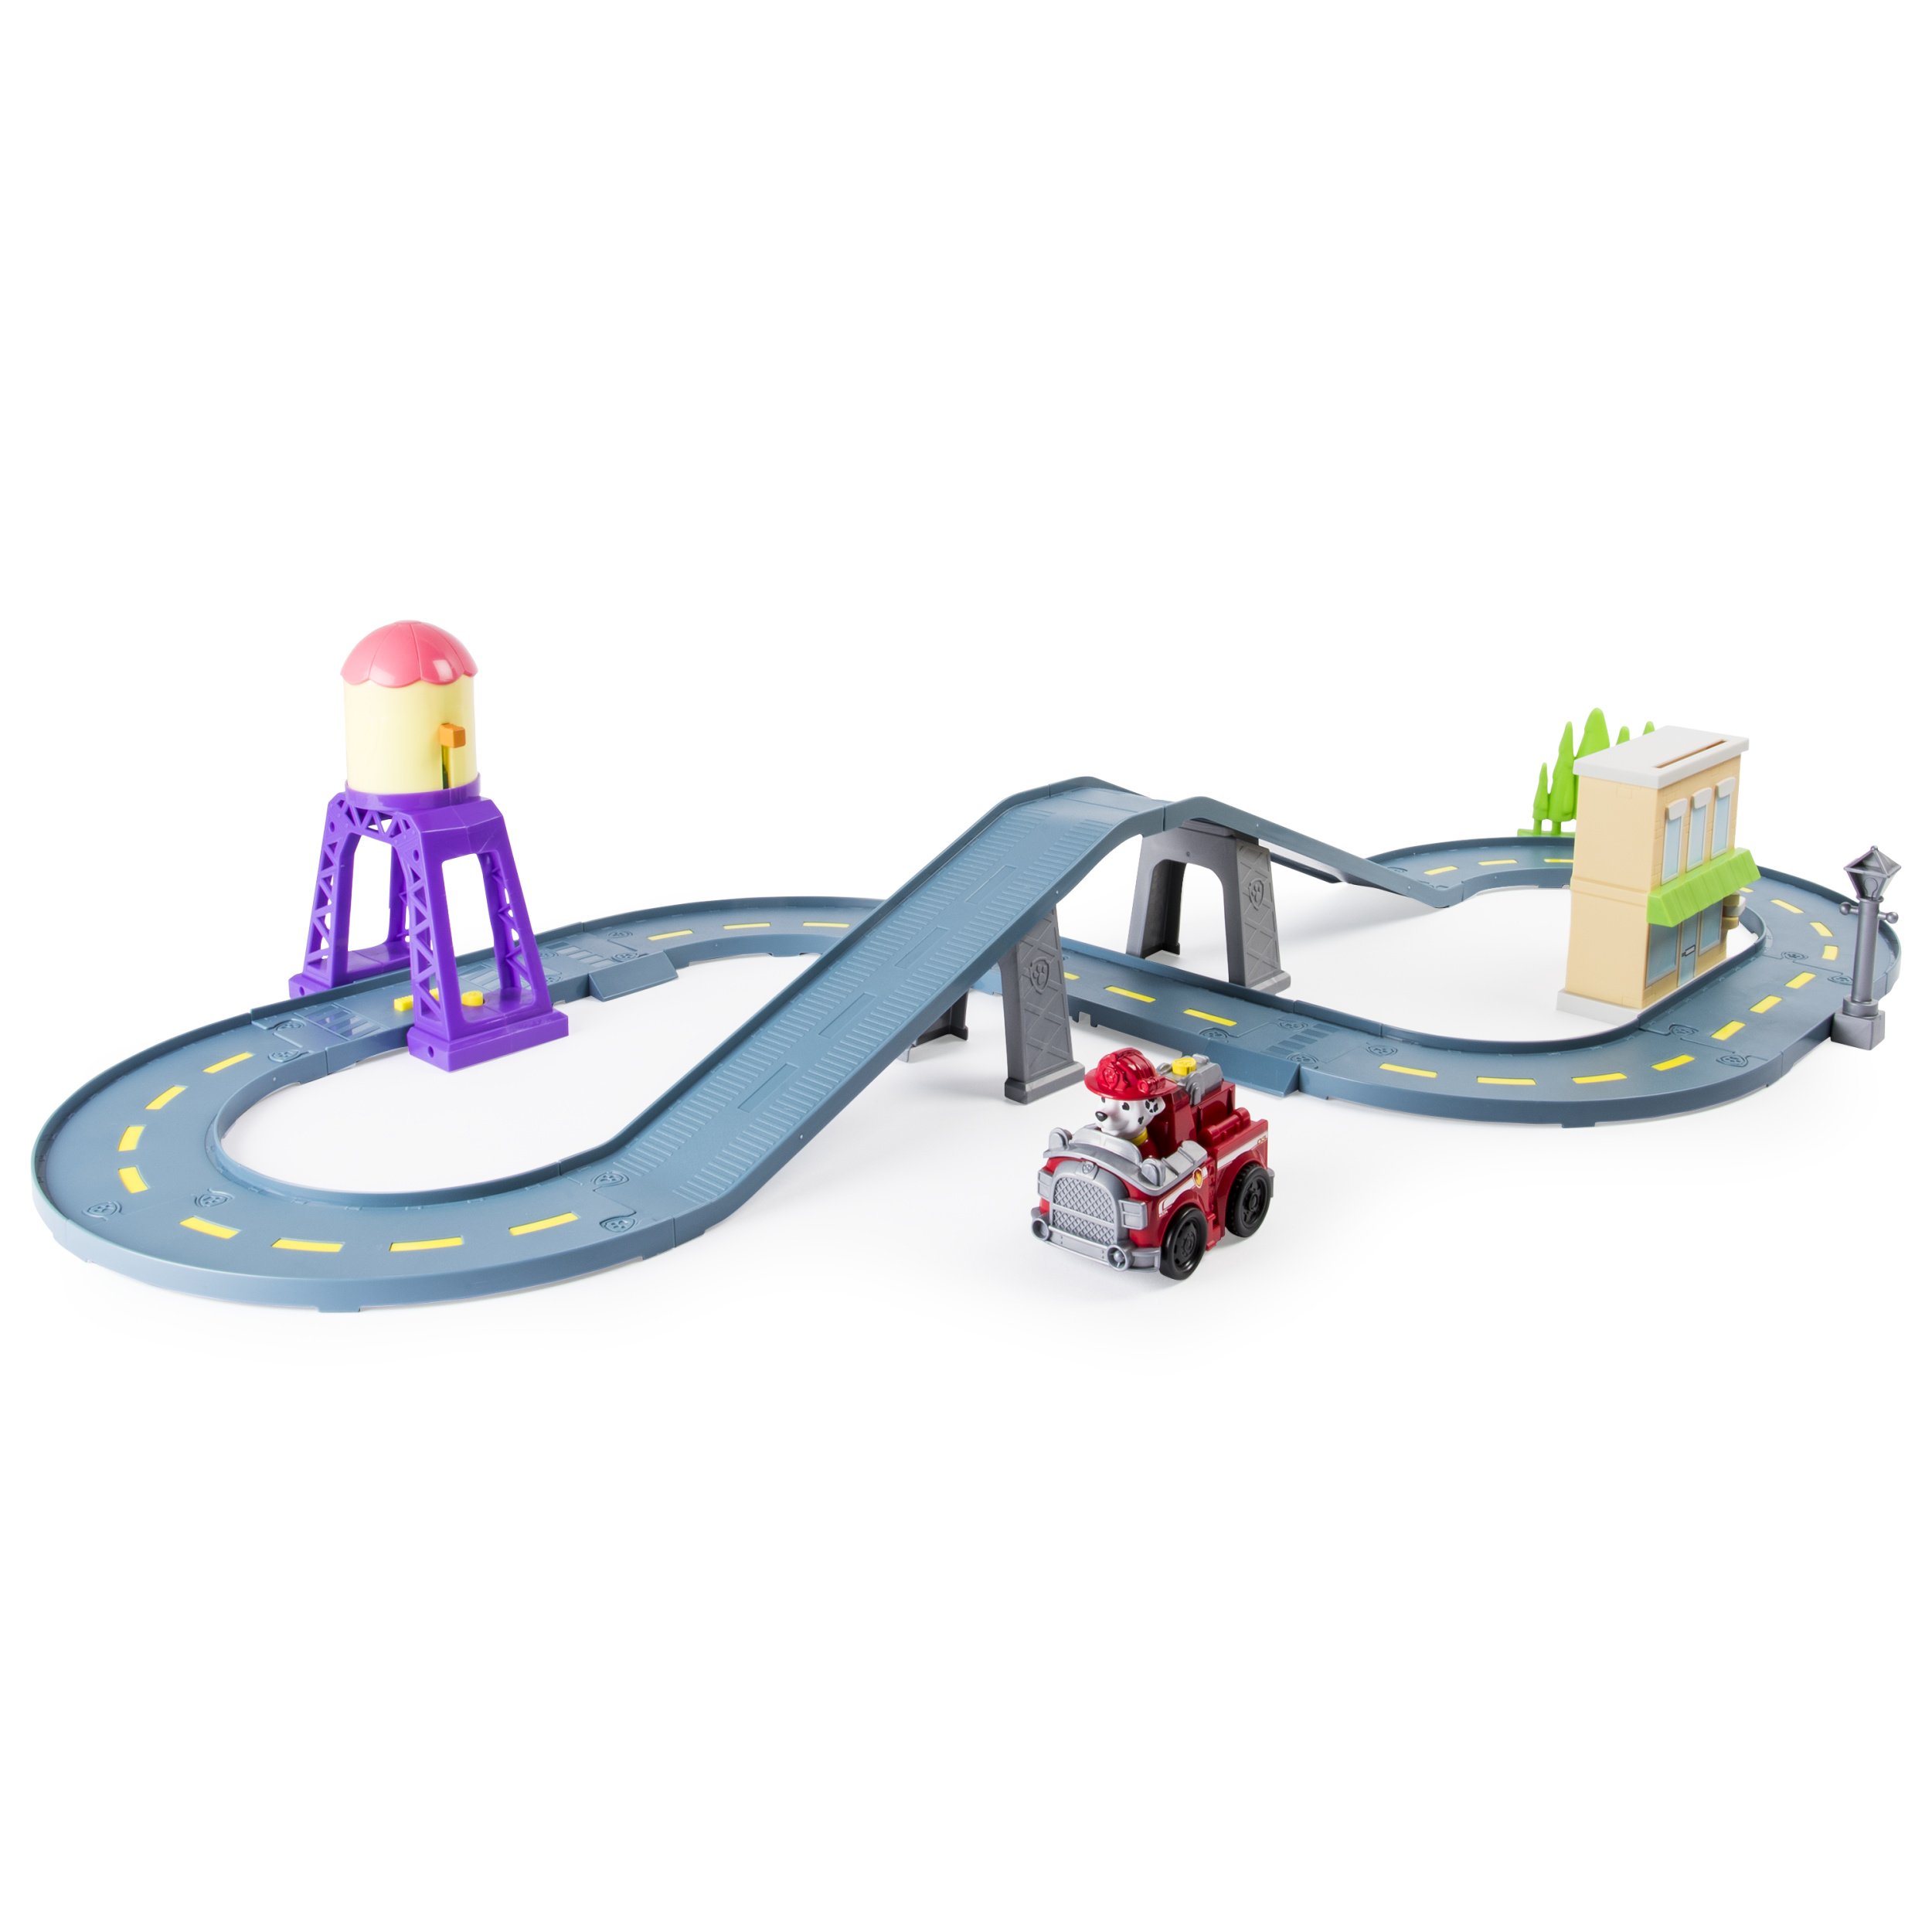 <p>Paw Patrol Roll Patrol – Marshall's Town Rescue Track Set with Exclusive Motorized Vehicle with Lights and Sounds</p>